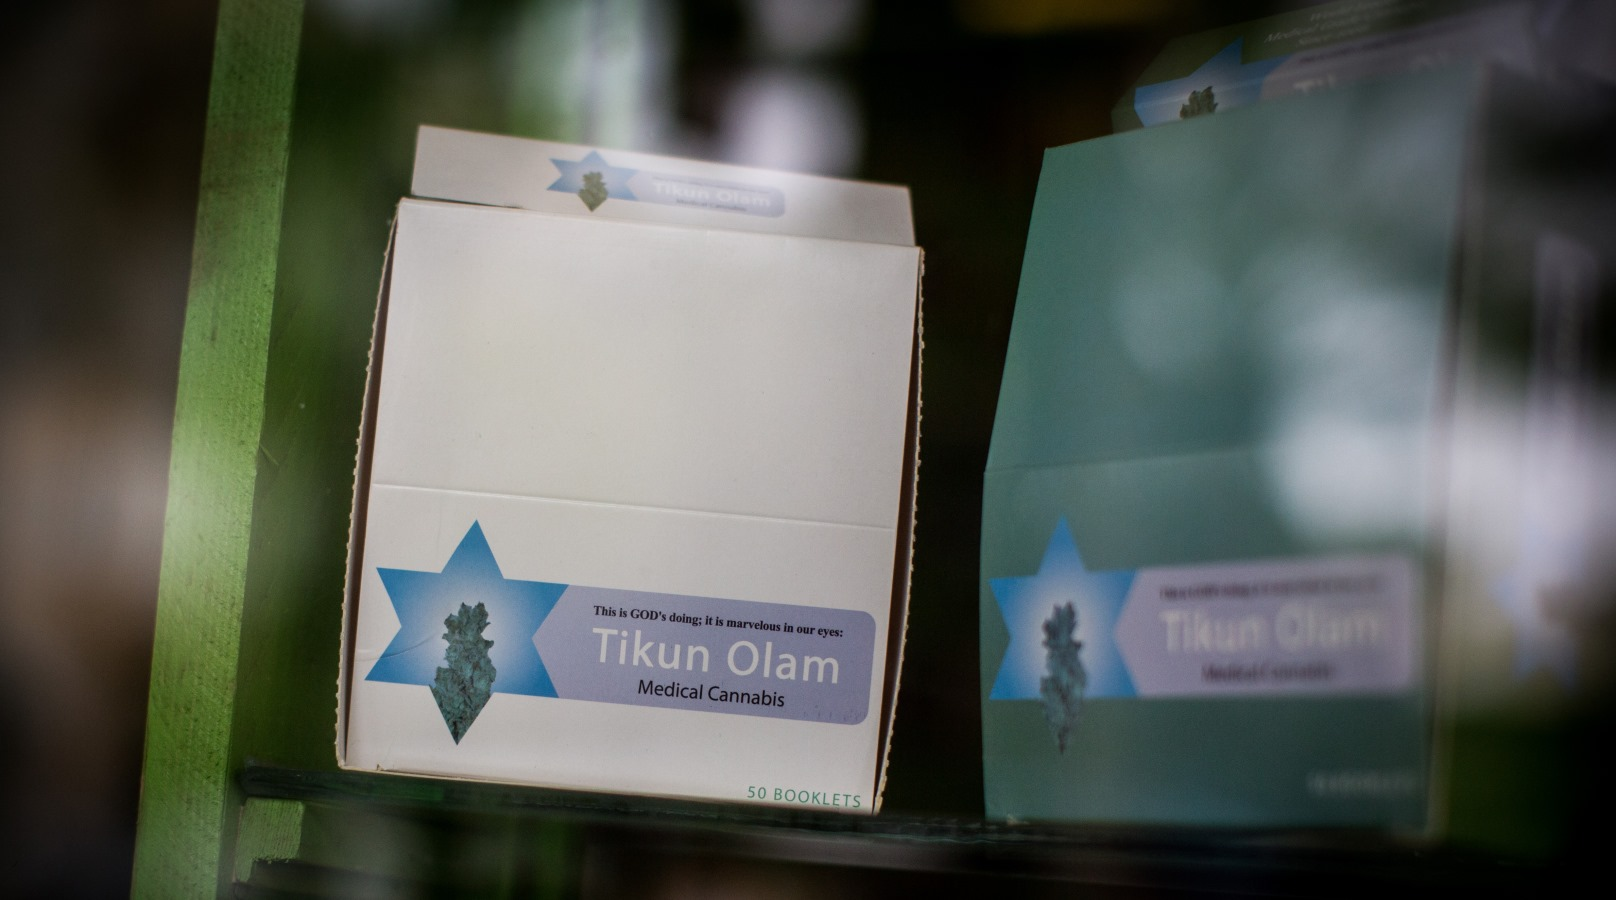 Medical cannabis tablets for sale at the Tikun Olam store in Tel Aviv. Photo by Hadas Parush/FLASH90